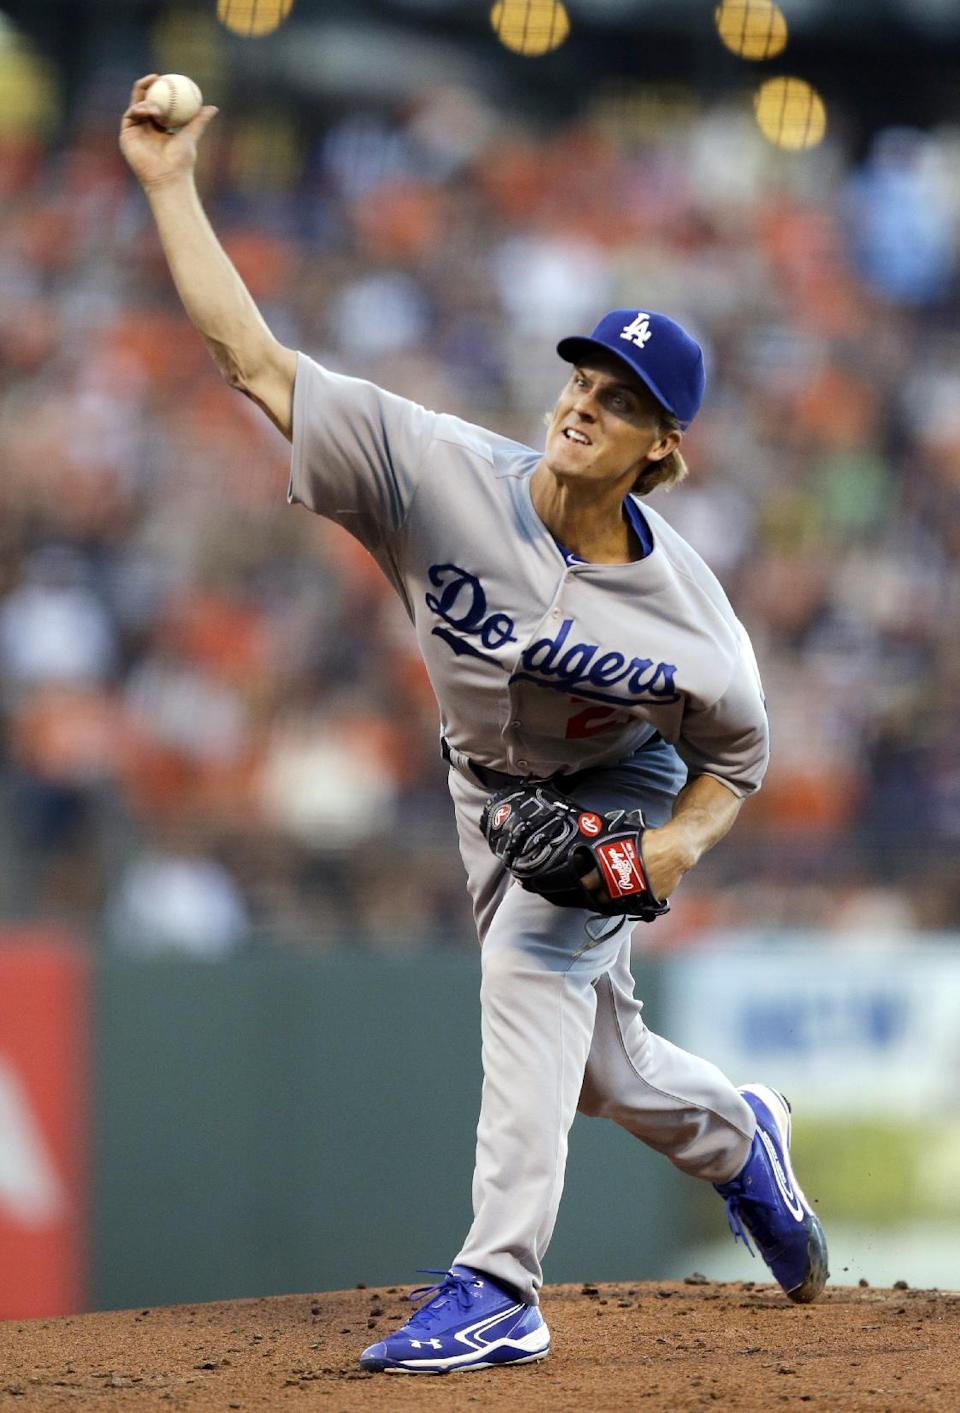 Los Angeles Dodgers pitcher Zack Greinke works against the San Francisco Giants in the first inning of a baseball game Friday, July 25, 2014, in San Francisco. (AP Photo)